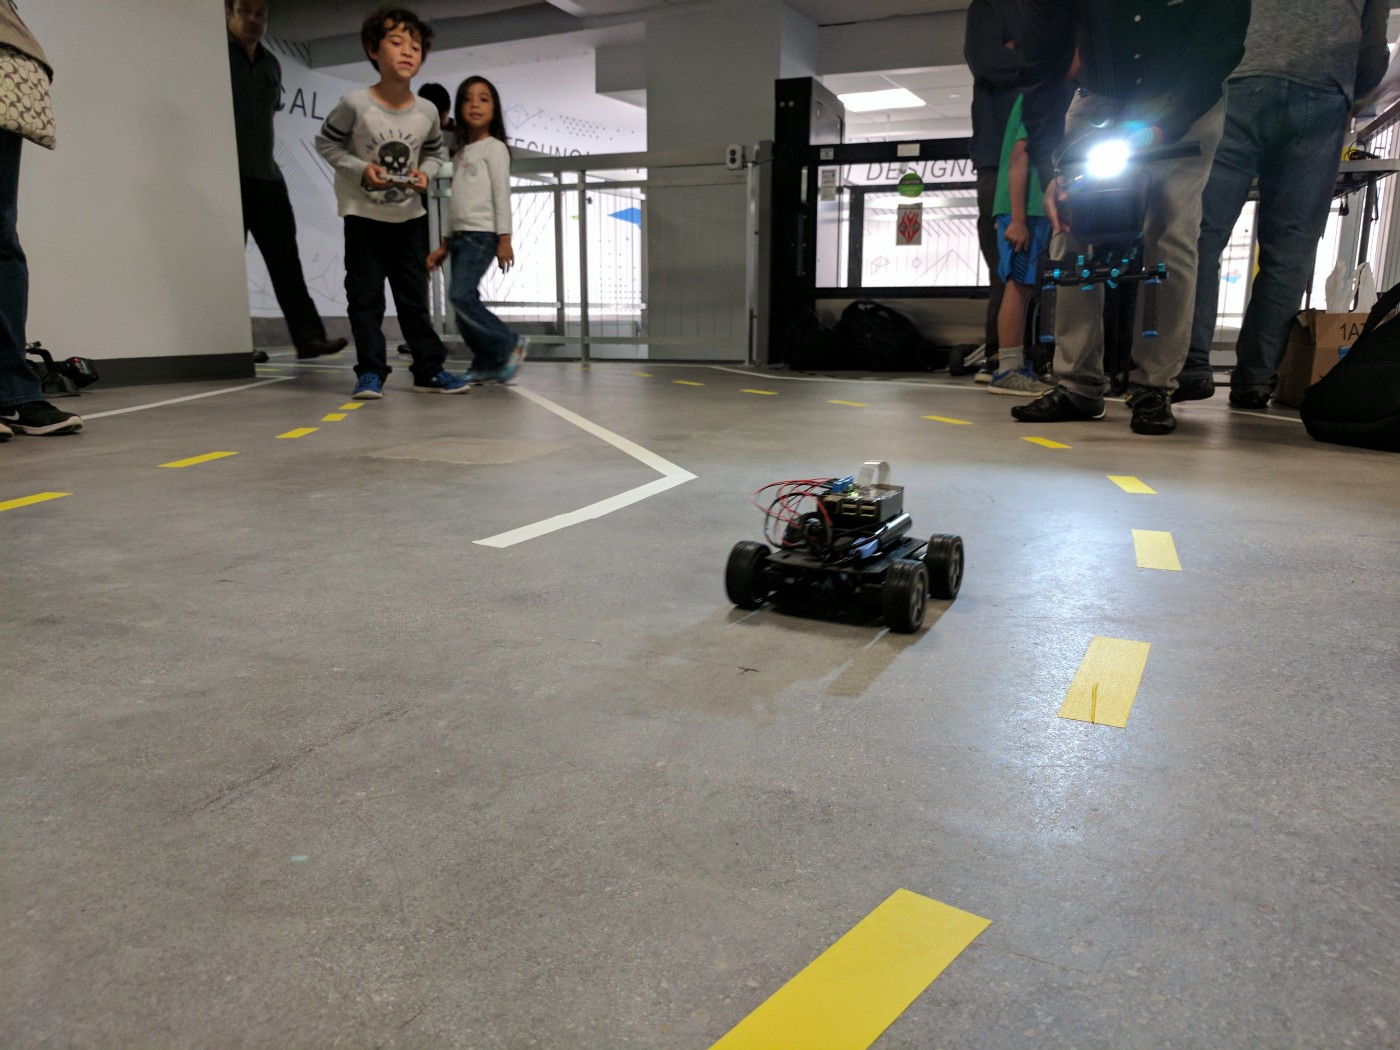 Build your own (small) Autonomous Robocar - Points of interest